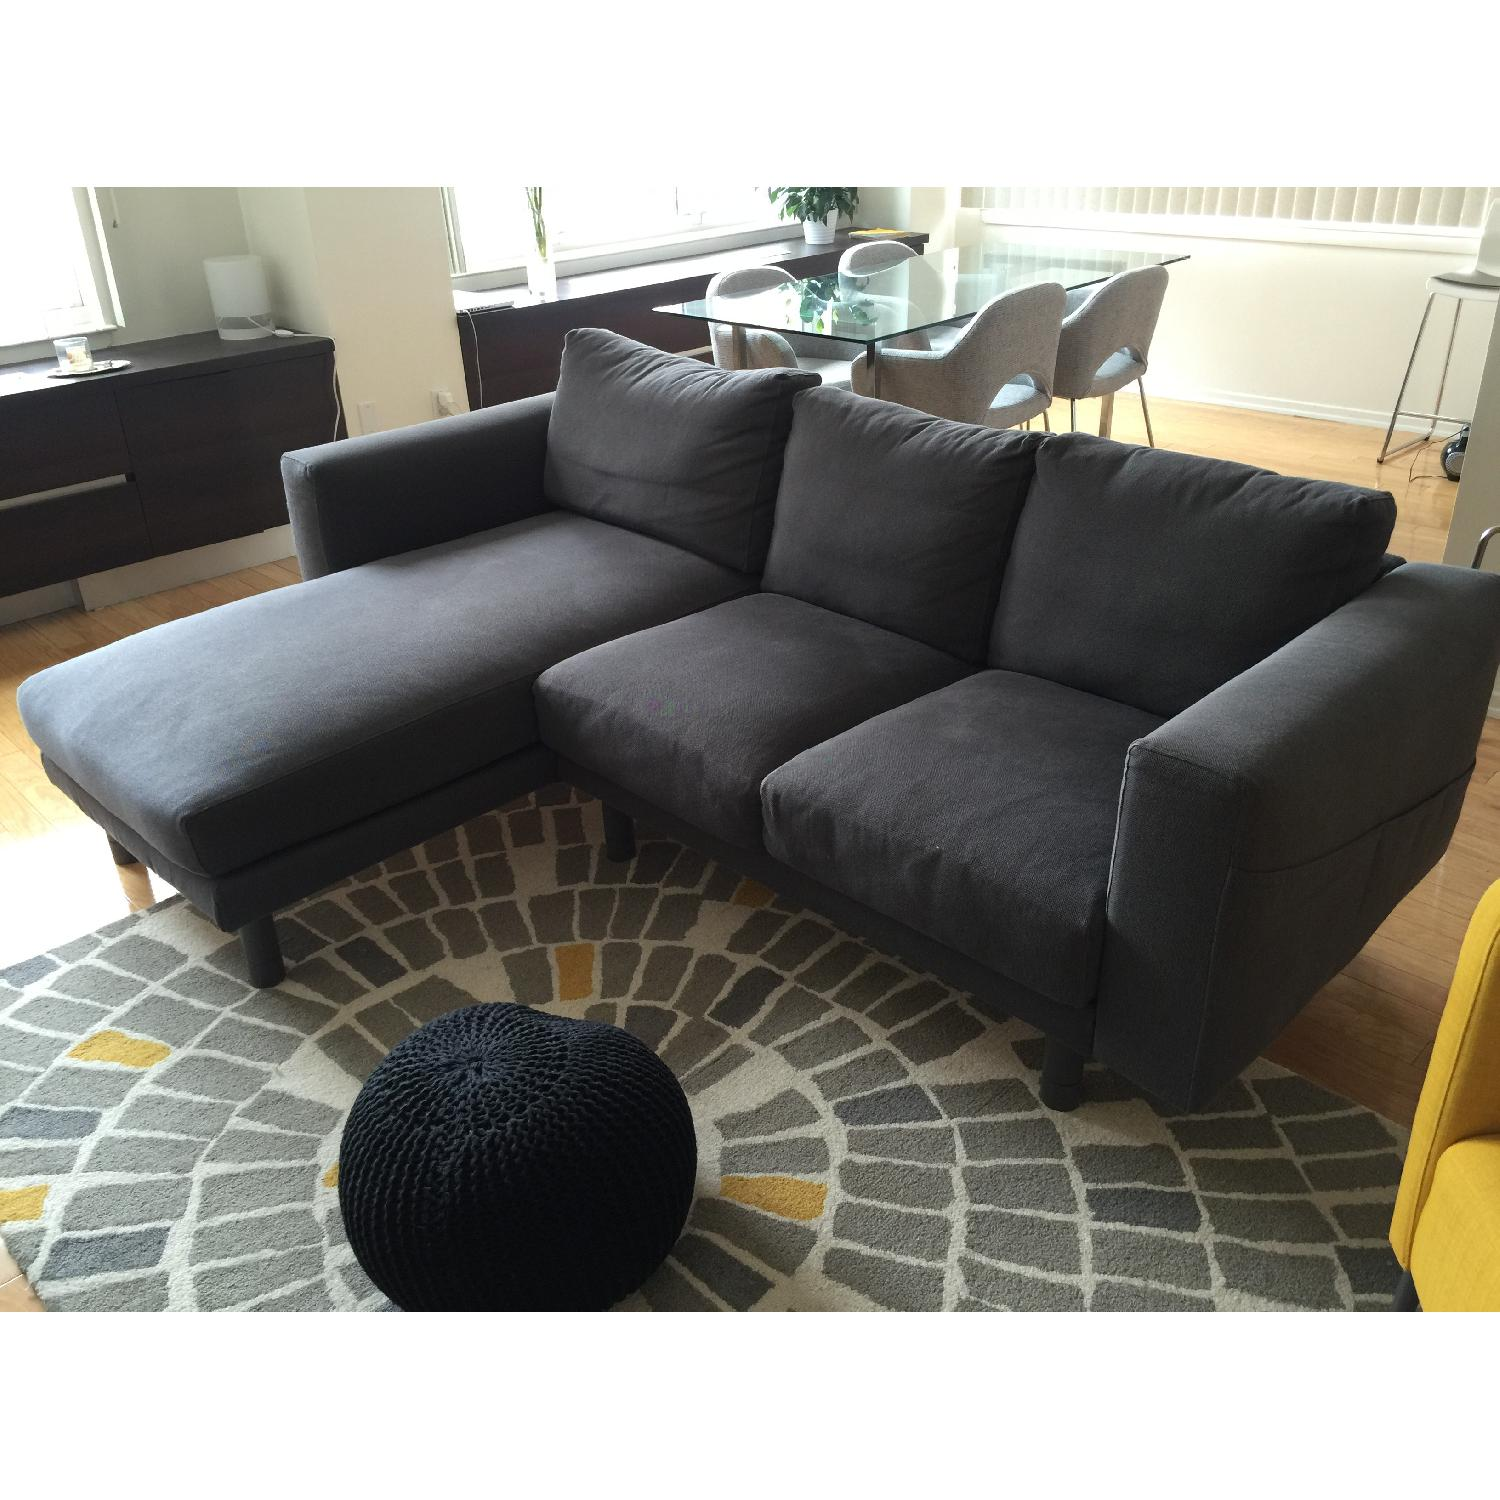 Ikea Sectional Couch - image-2